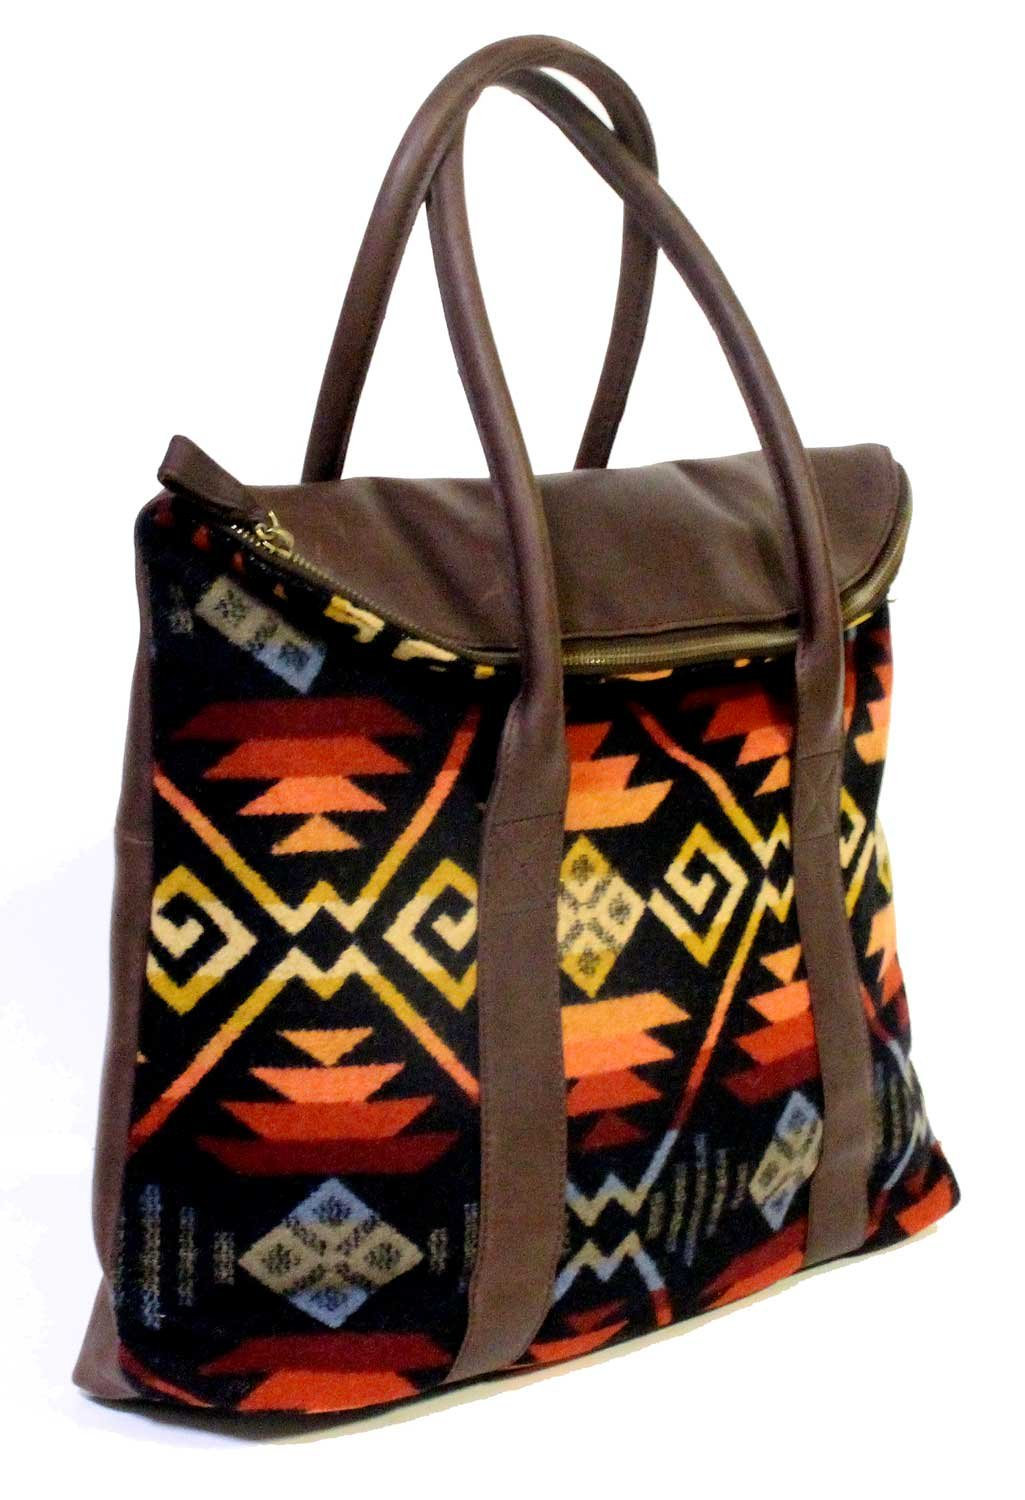 Pendleton Black Coyote Butte Leather Travel Tote | Carry All | Bag by Pendleton Woolen Mills (Image #2)